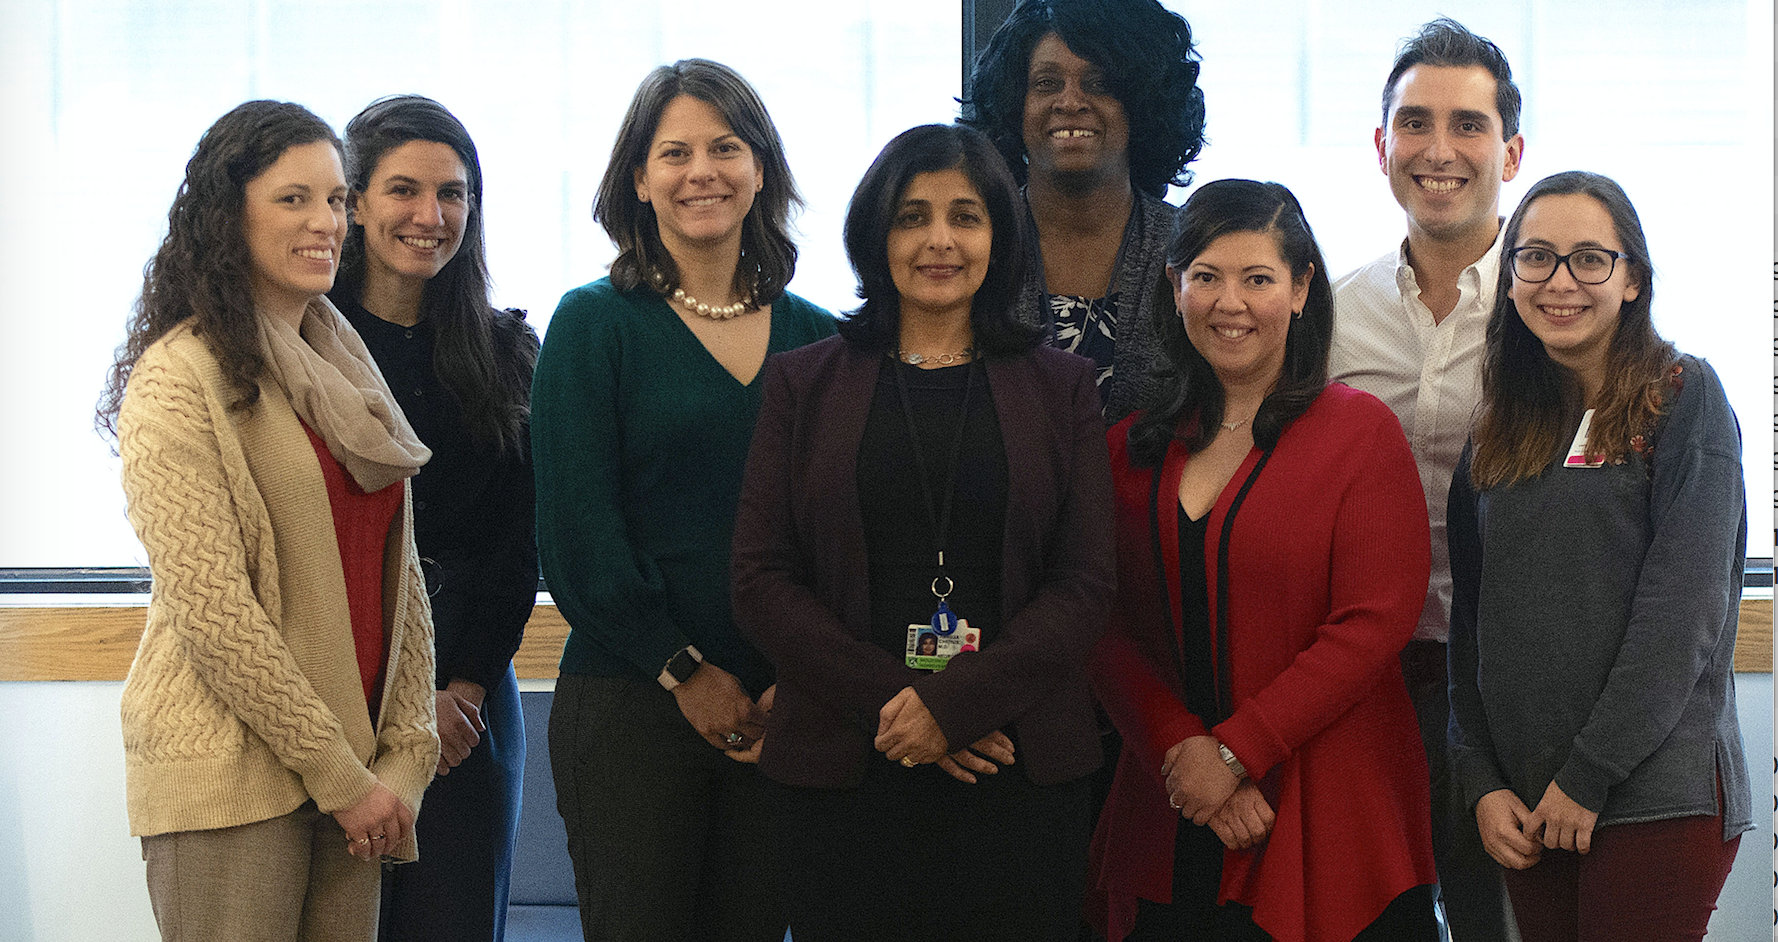 Left to right: Tracy Popkin, RN, CPN (Nurse); Maria Theodorakakis, PhD (Neuropsychology Fellow); Ellen O'Donnell, PhD (Neuropsychologist); Tanuja Chitnis, MD (Clinic Director);  Jackie Brown (Patient Services Coordinator); Katia Canenguez, PhD, EdM (Psychologist); Jonathan Santoro, MD (Clinical Fellow); Paola Castro, BA (Study Coordinator)